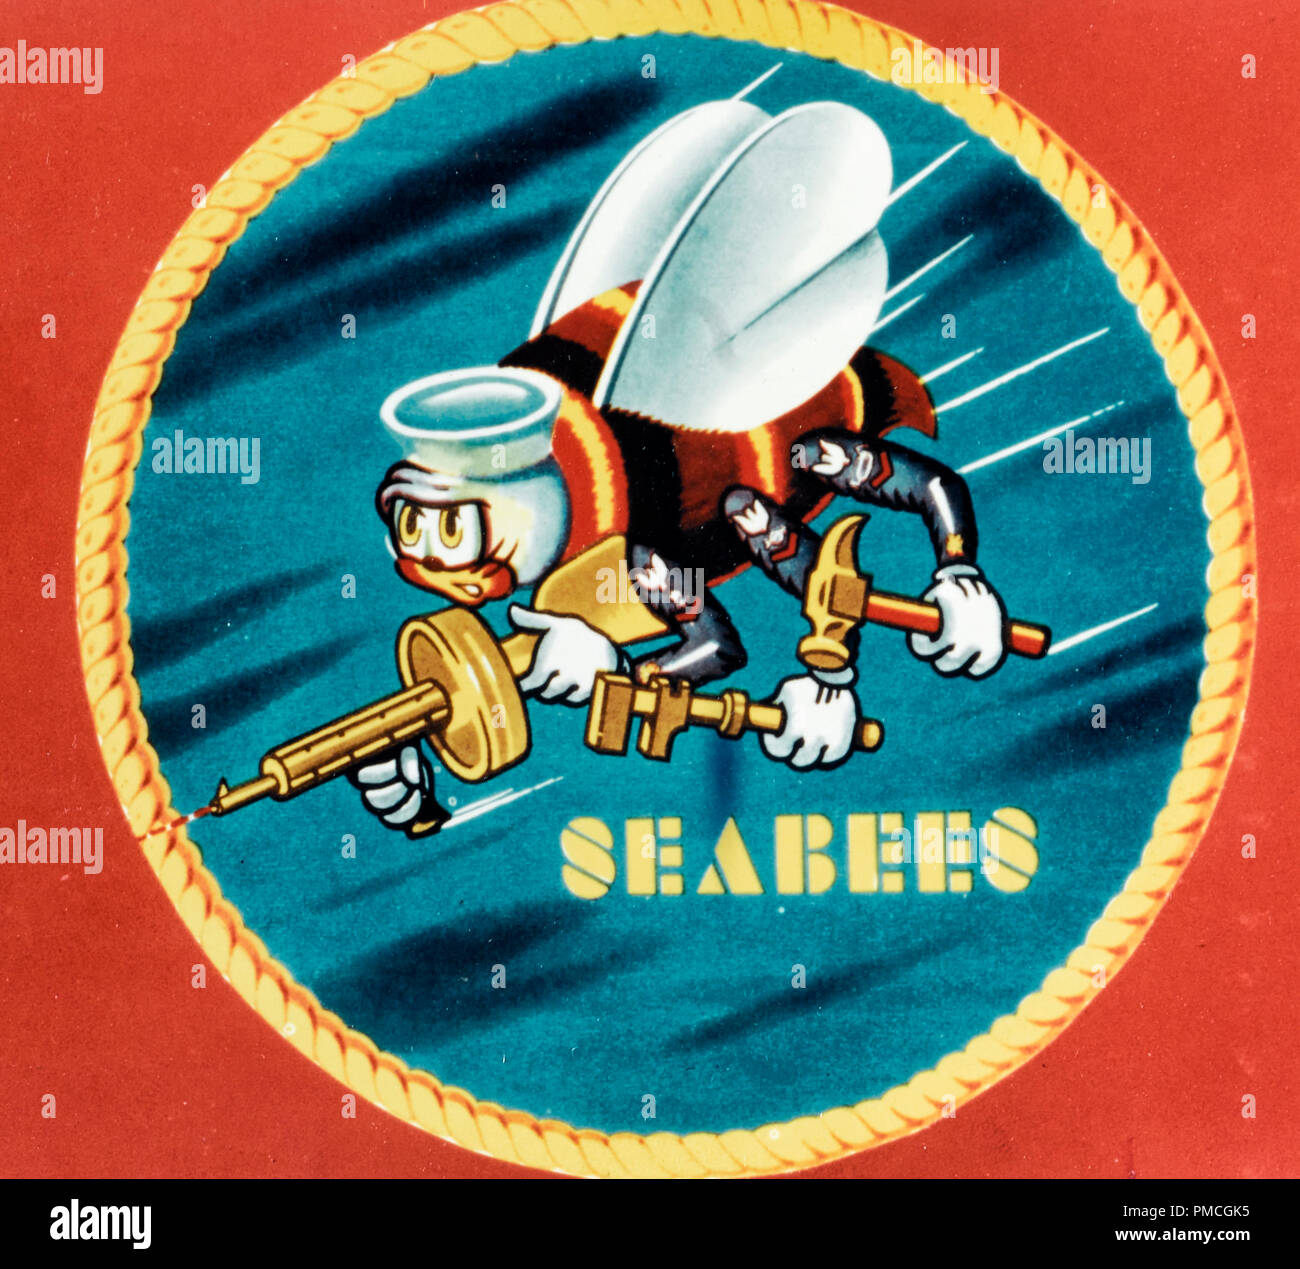 Insignia of the Navy's mobile construction battalions, or Seabees. - Stock Image